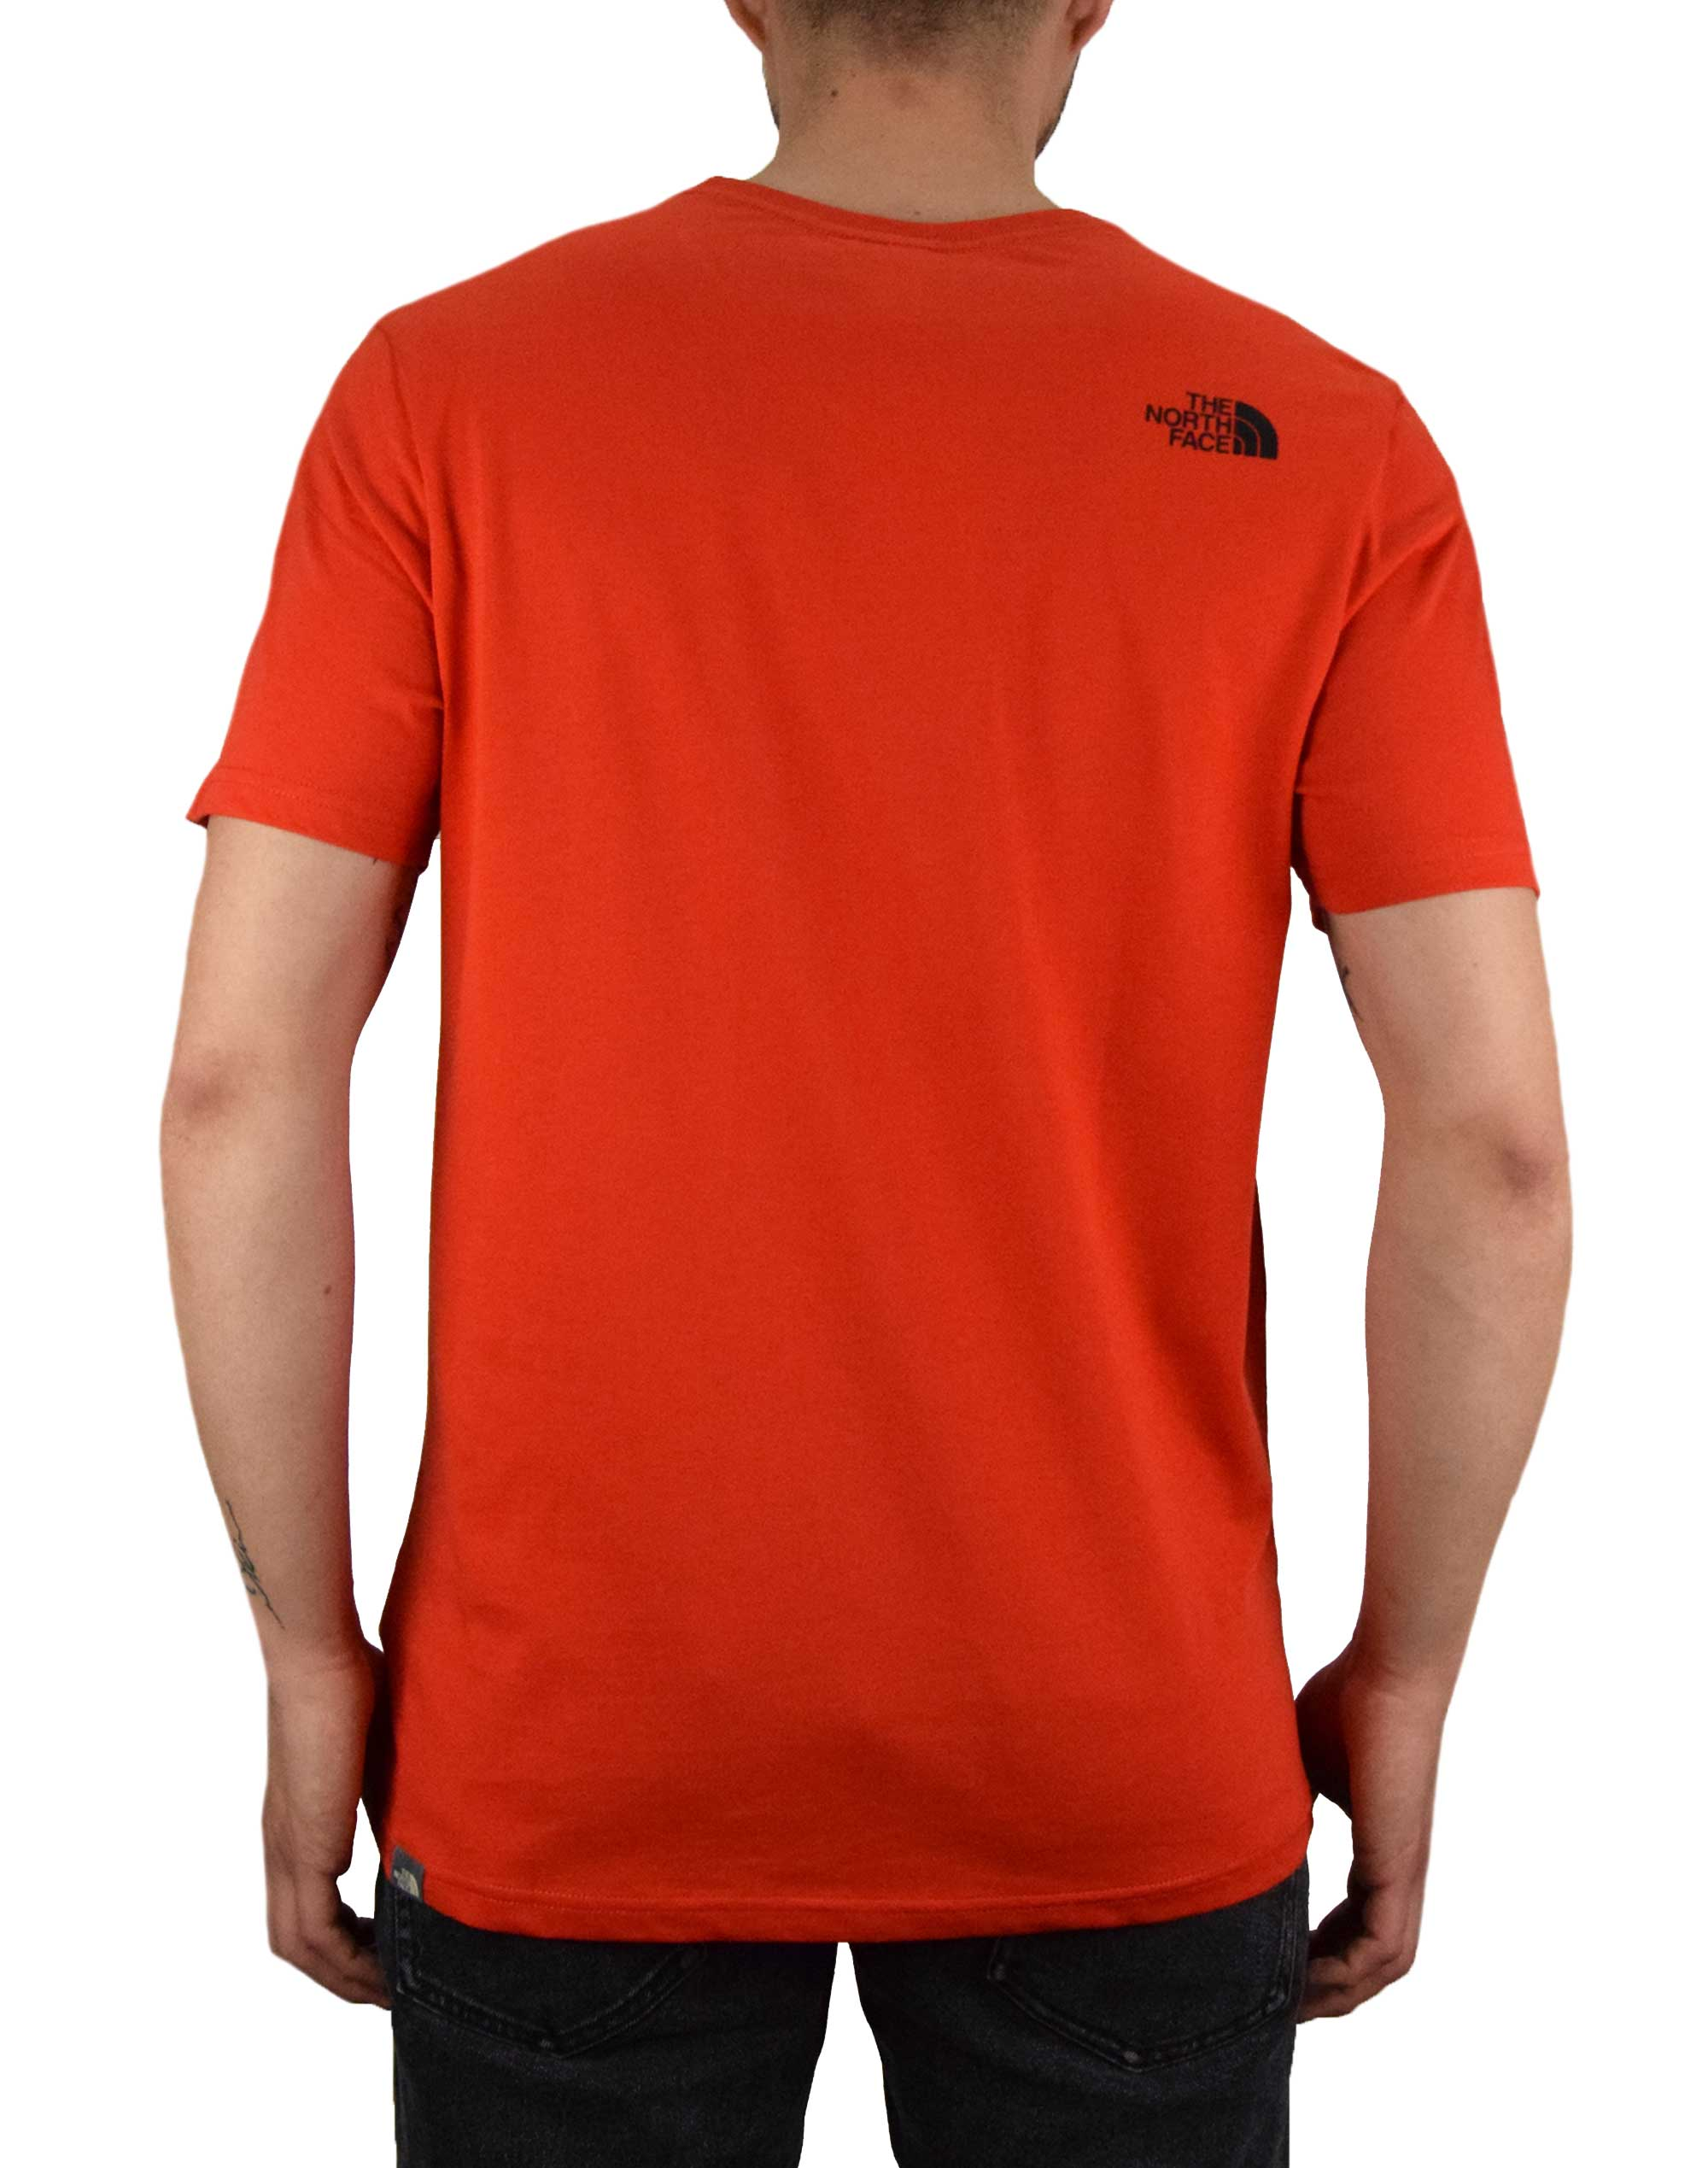 The North Face Easy Tee (NF0A2TX3WU51) Fiery Red/Black